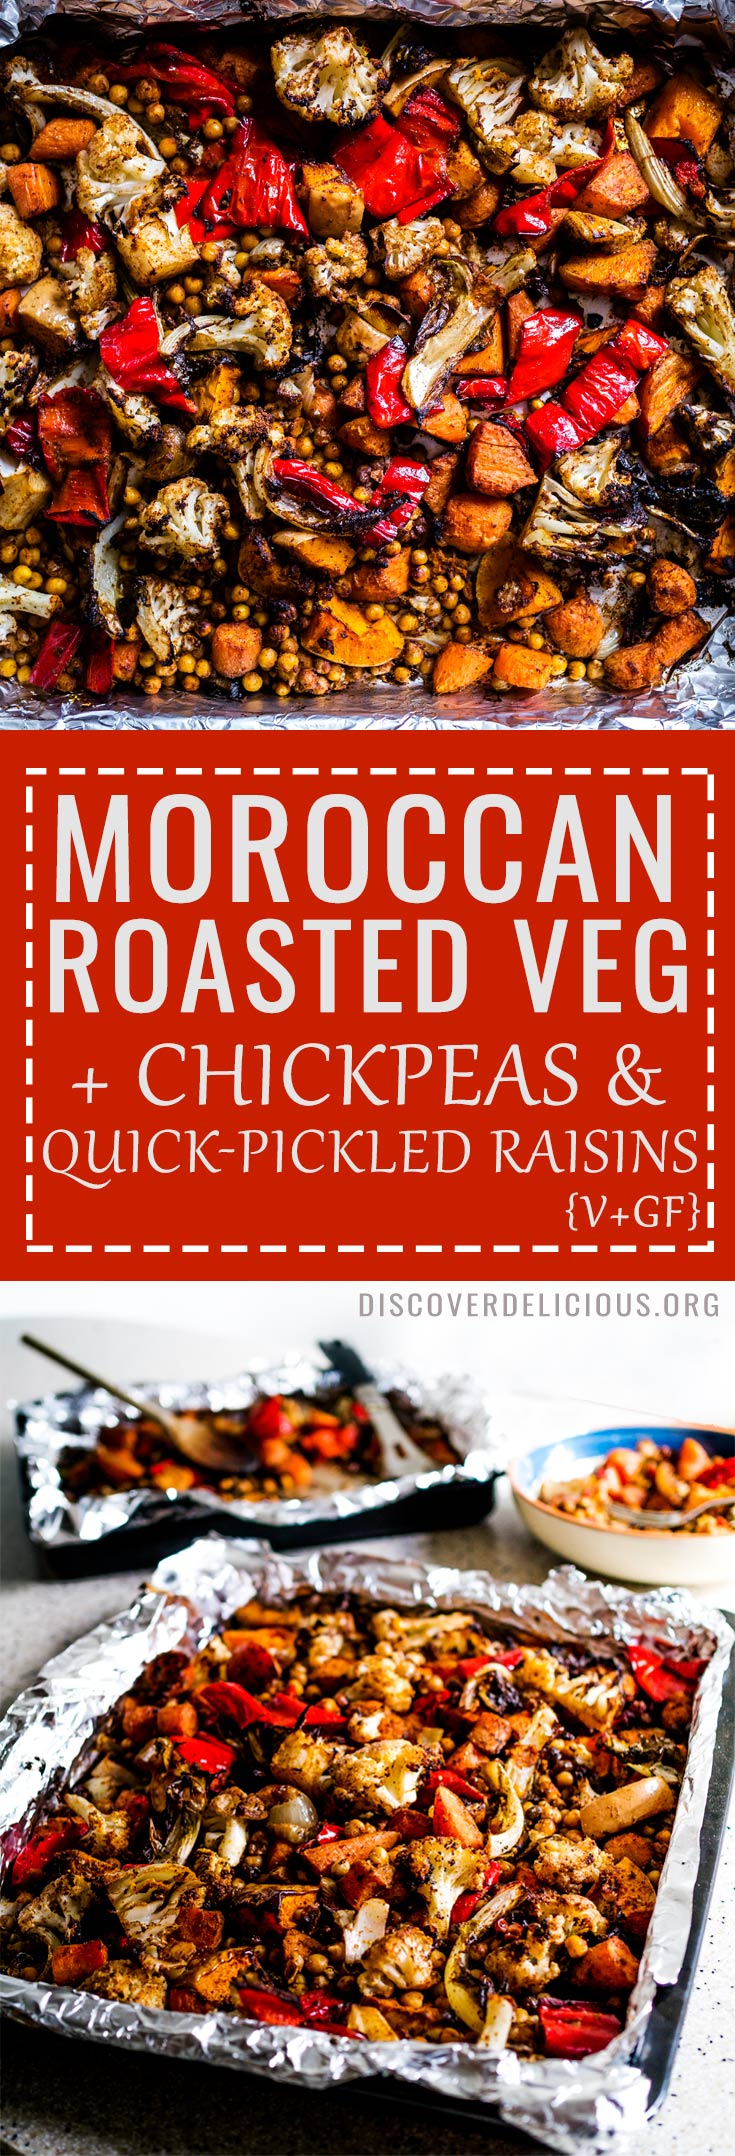 Moroccan Roasted Vegetables w/ Chickpeas + Quick-Pickled Raisins Recipe | Vegan + GF | www.discoverdelicious.org